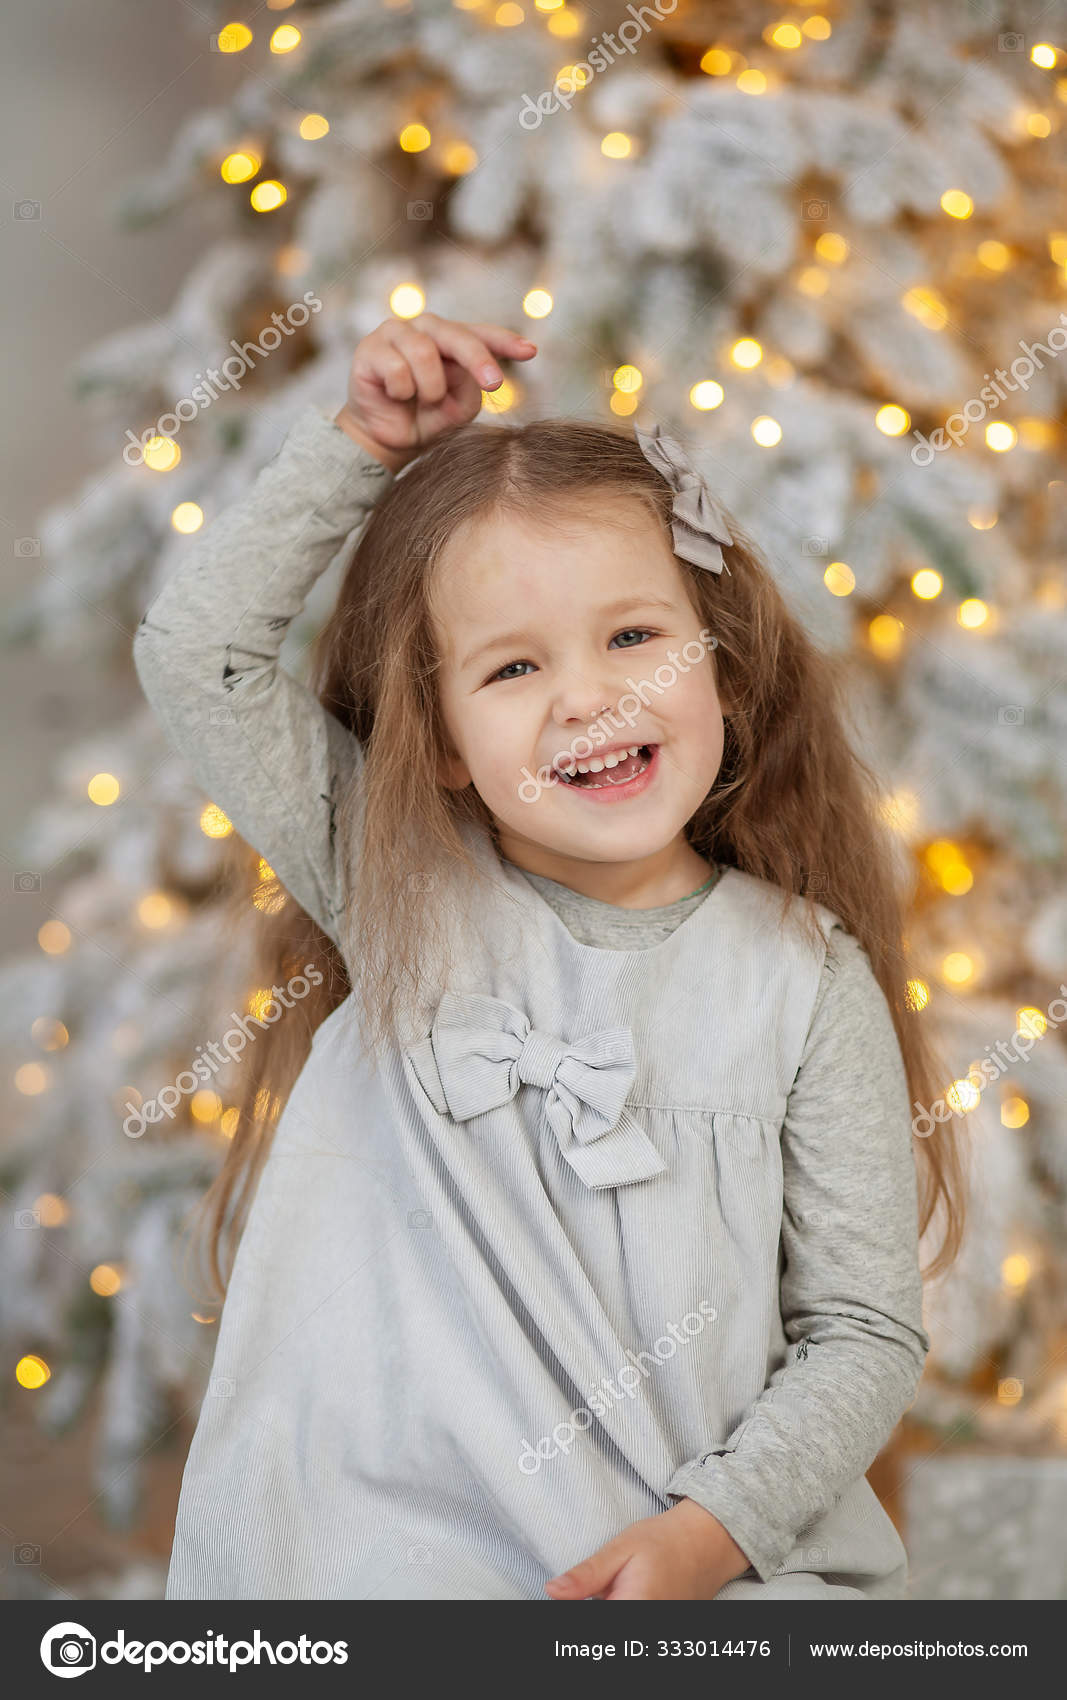 2021 Christmas Lights Little Cute Girl Bright Christmas Lights New Year 2021 Christmas Stock Photo Image By C Fotka Anna Gmail Com 333014476